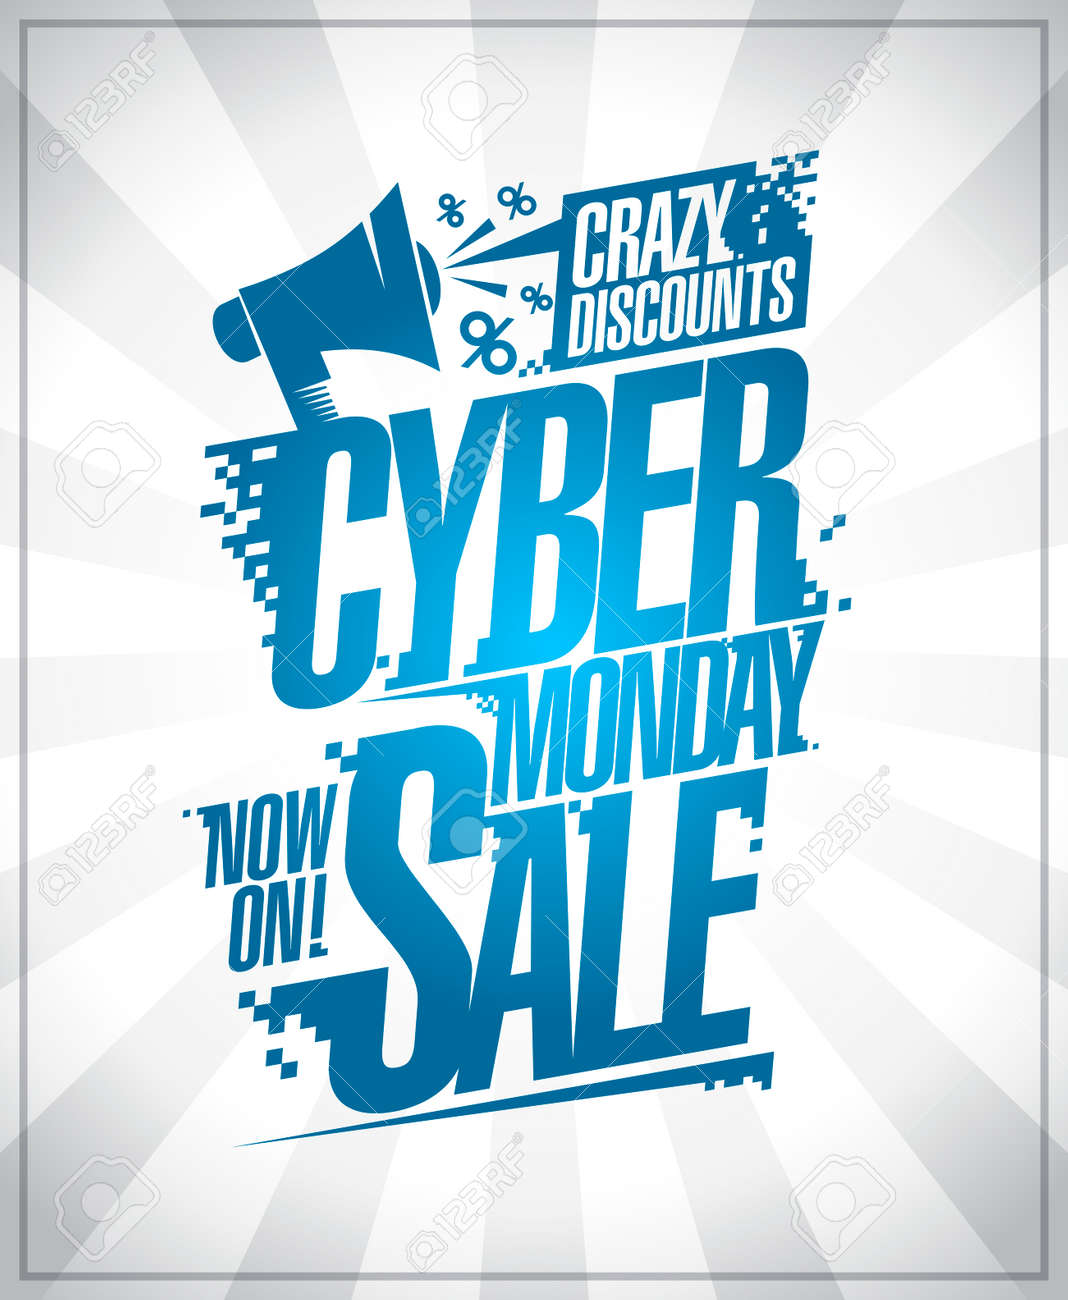 e07278a0073 Cyber Monday sale poster, crazy discounts with loudspeaker.